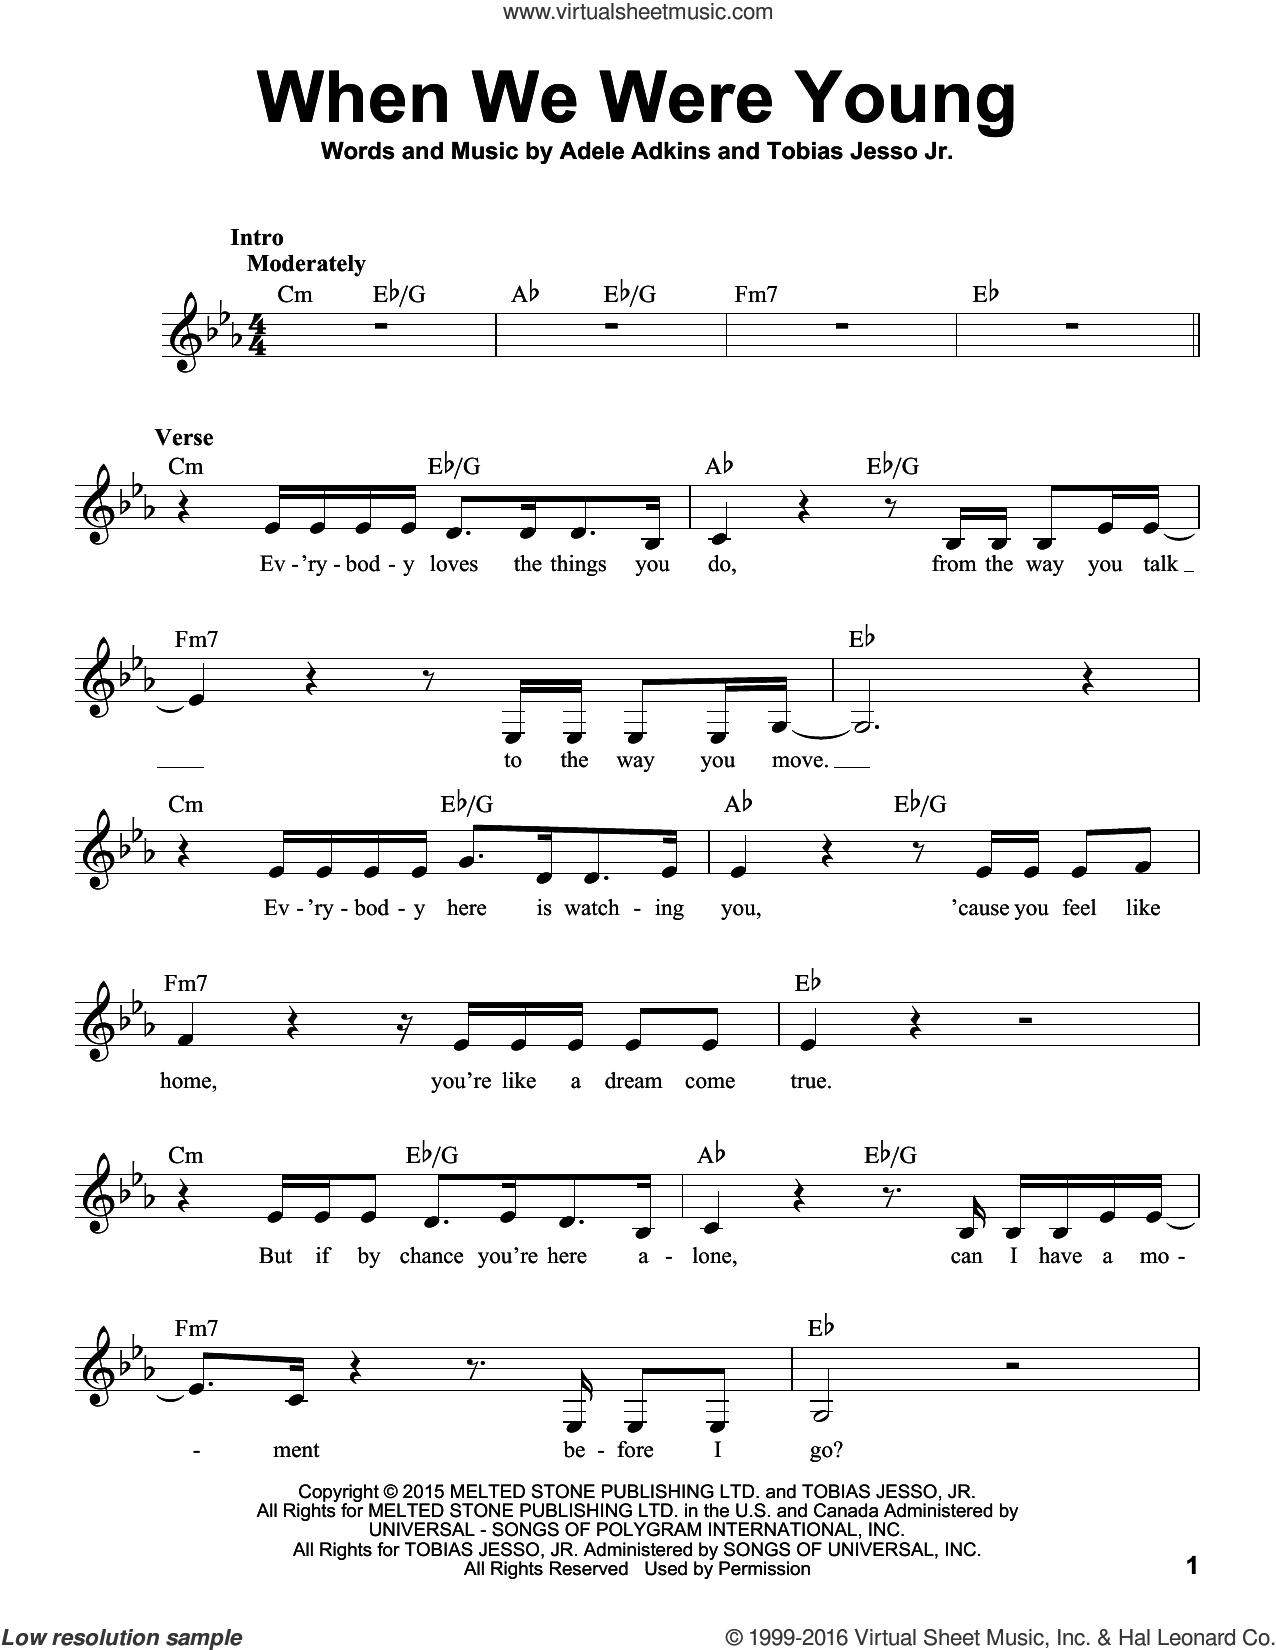 When We Were Young sheet music for voice solo by Tobias Jesso Jr.